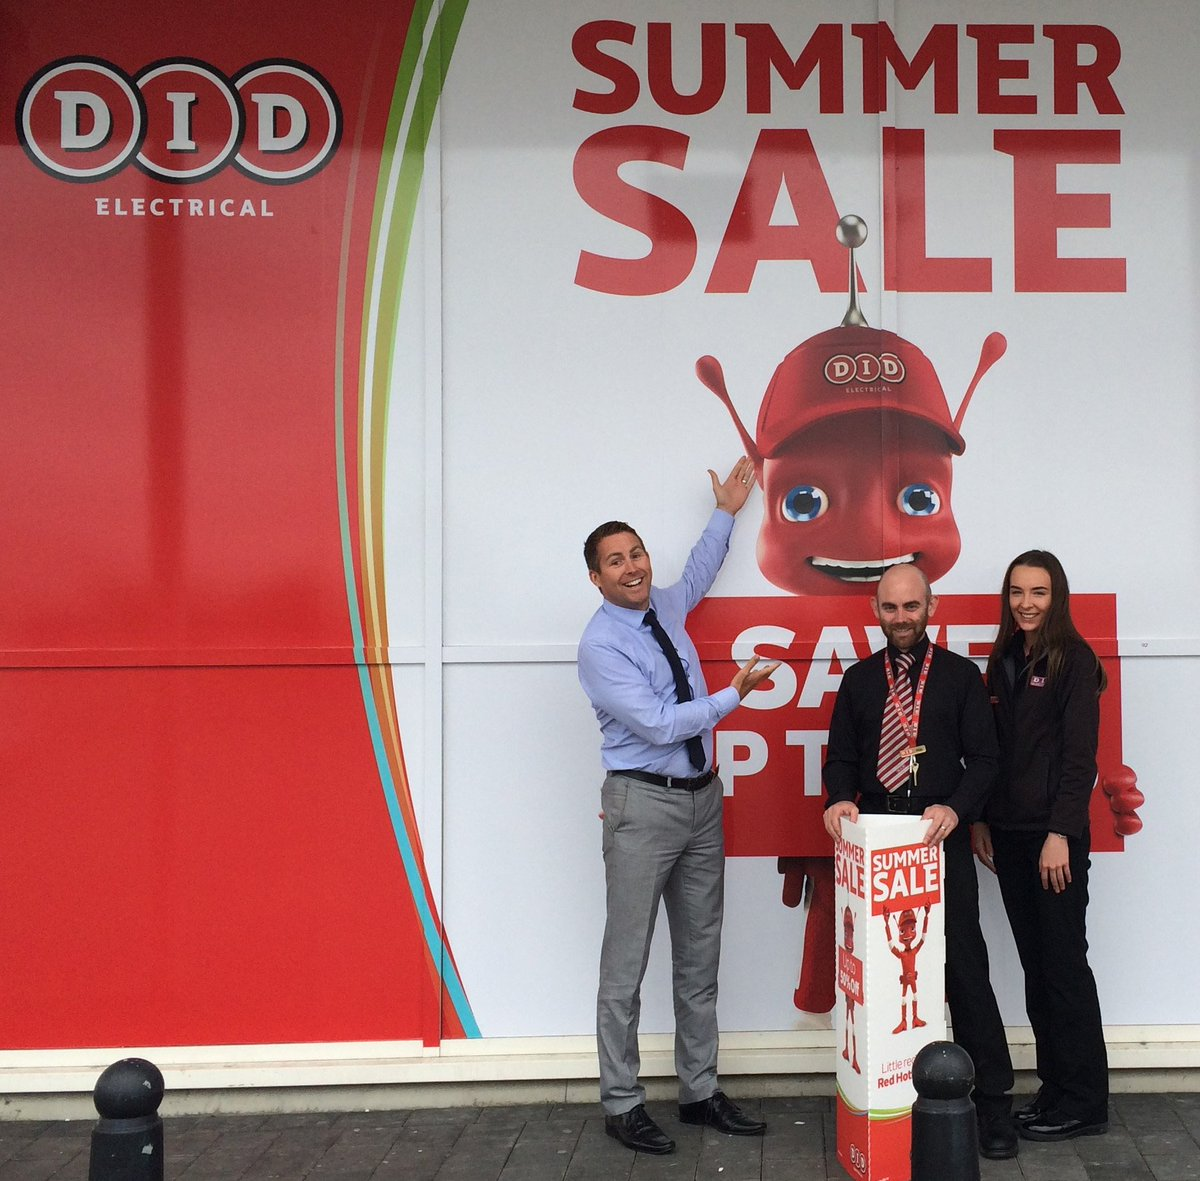 Drop into our dedicated DID staff for the best deals and product knowledge! or call us on 01-6250250 #SummerSale https://t.co/ZecZXiG072